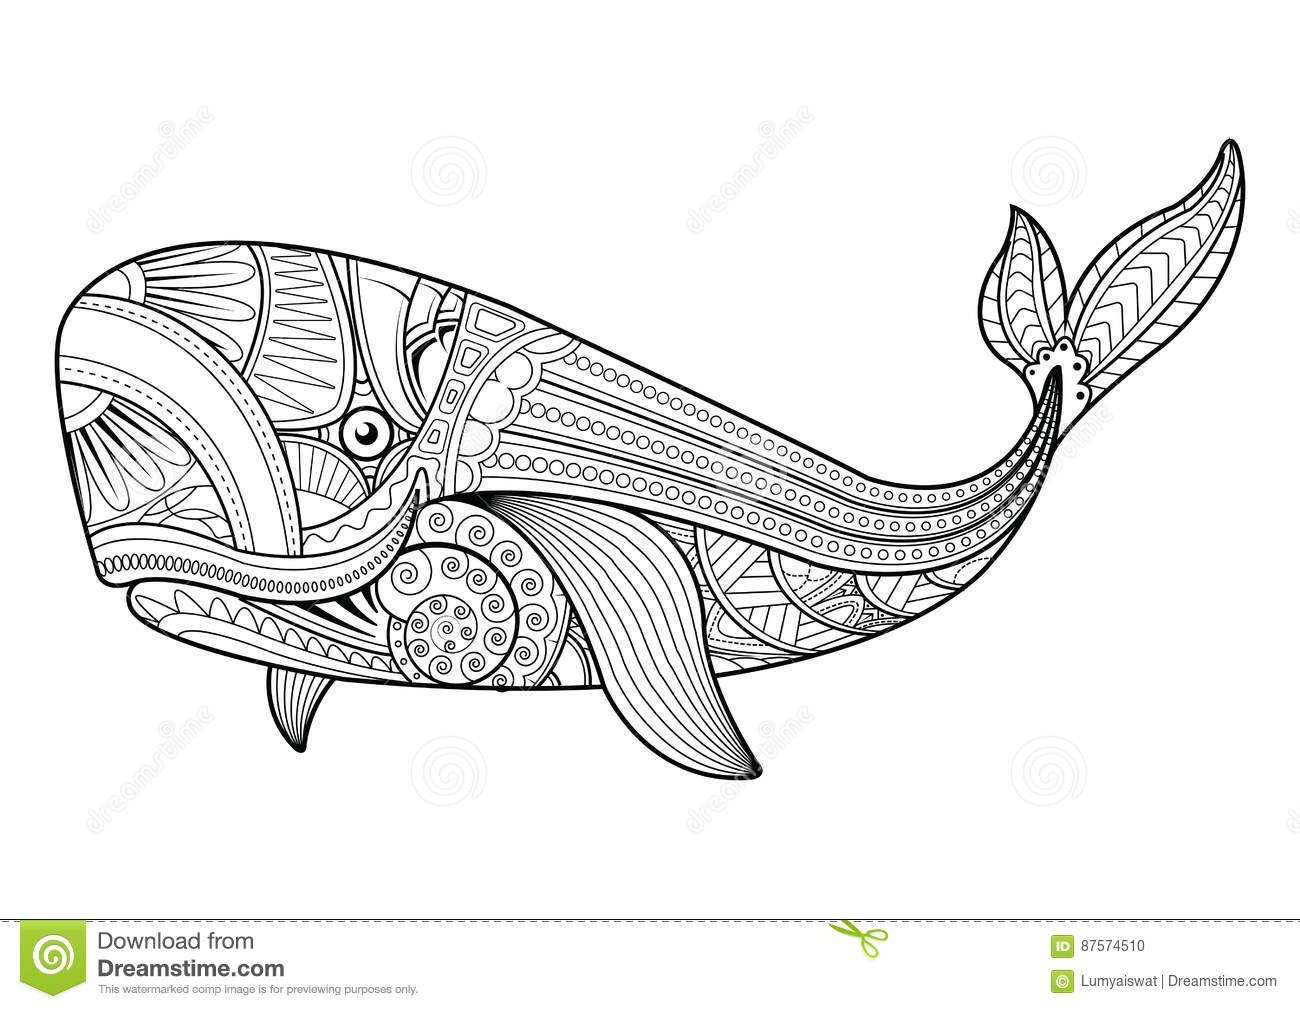 blue whale coloring page download blue whale coloring pages with